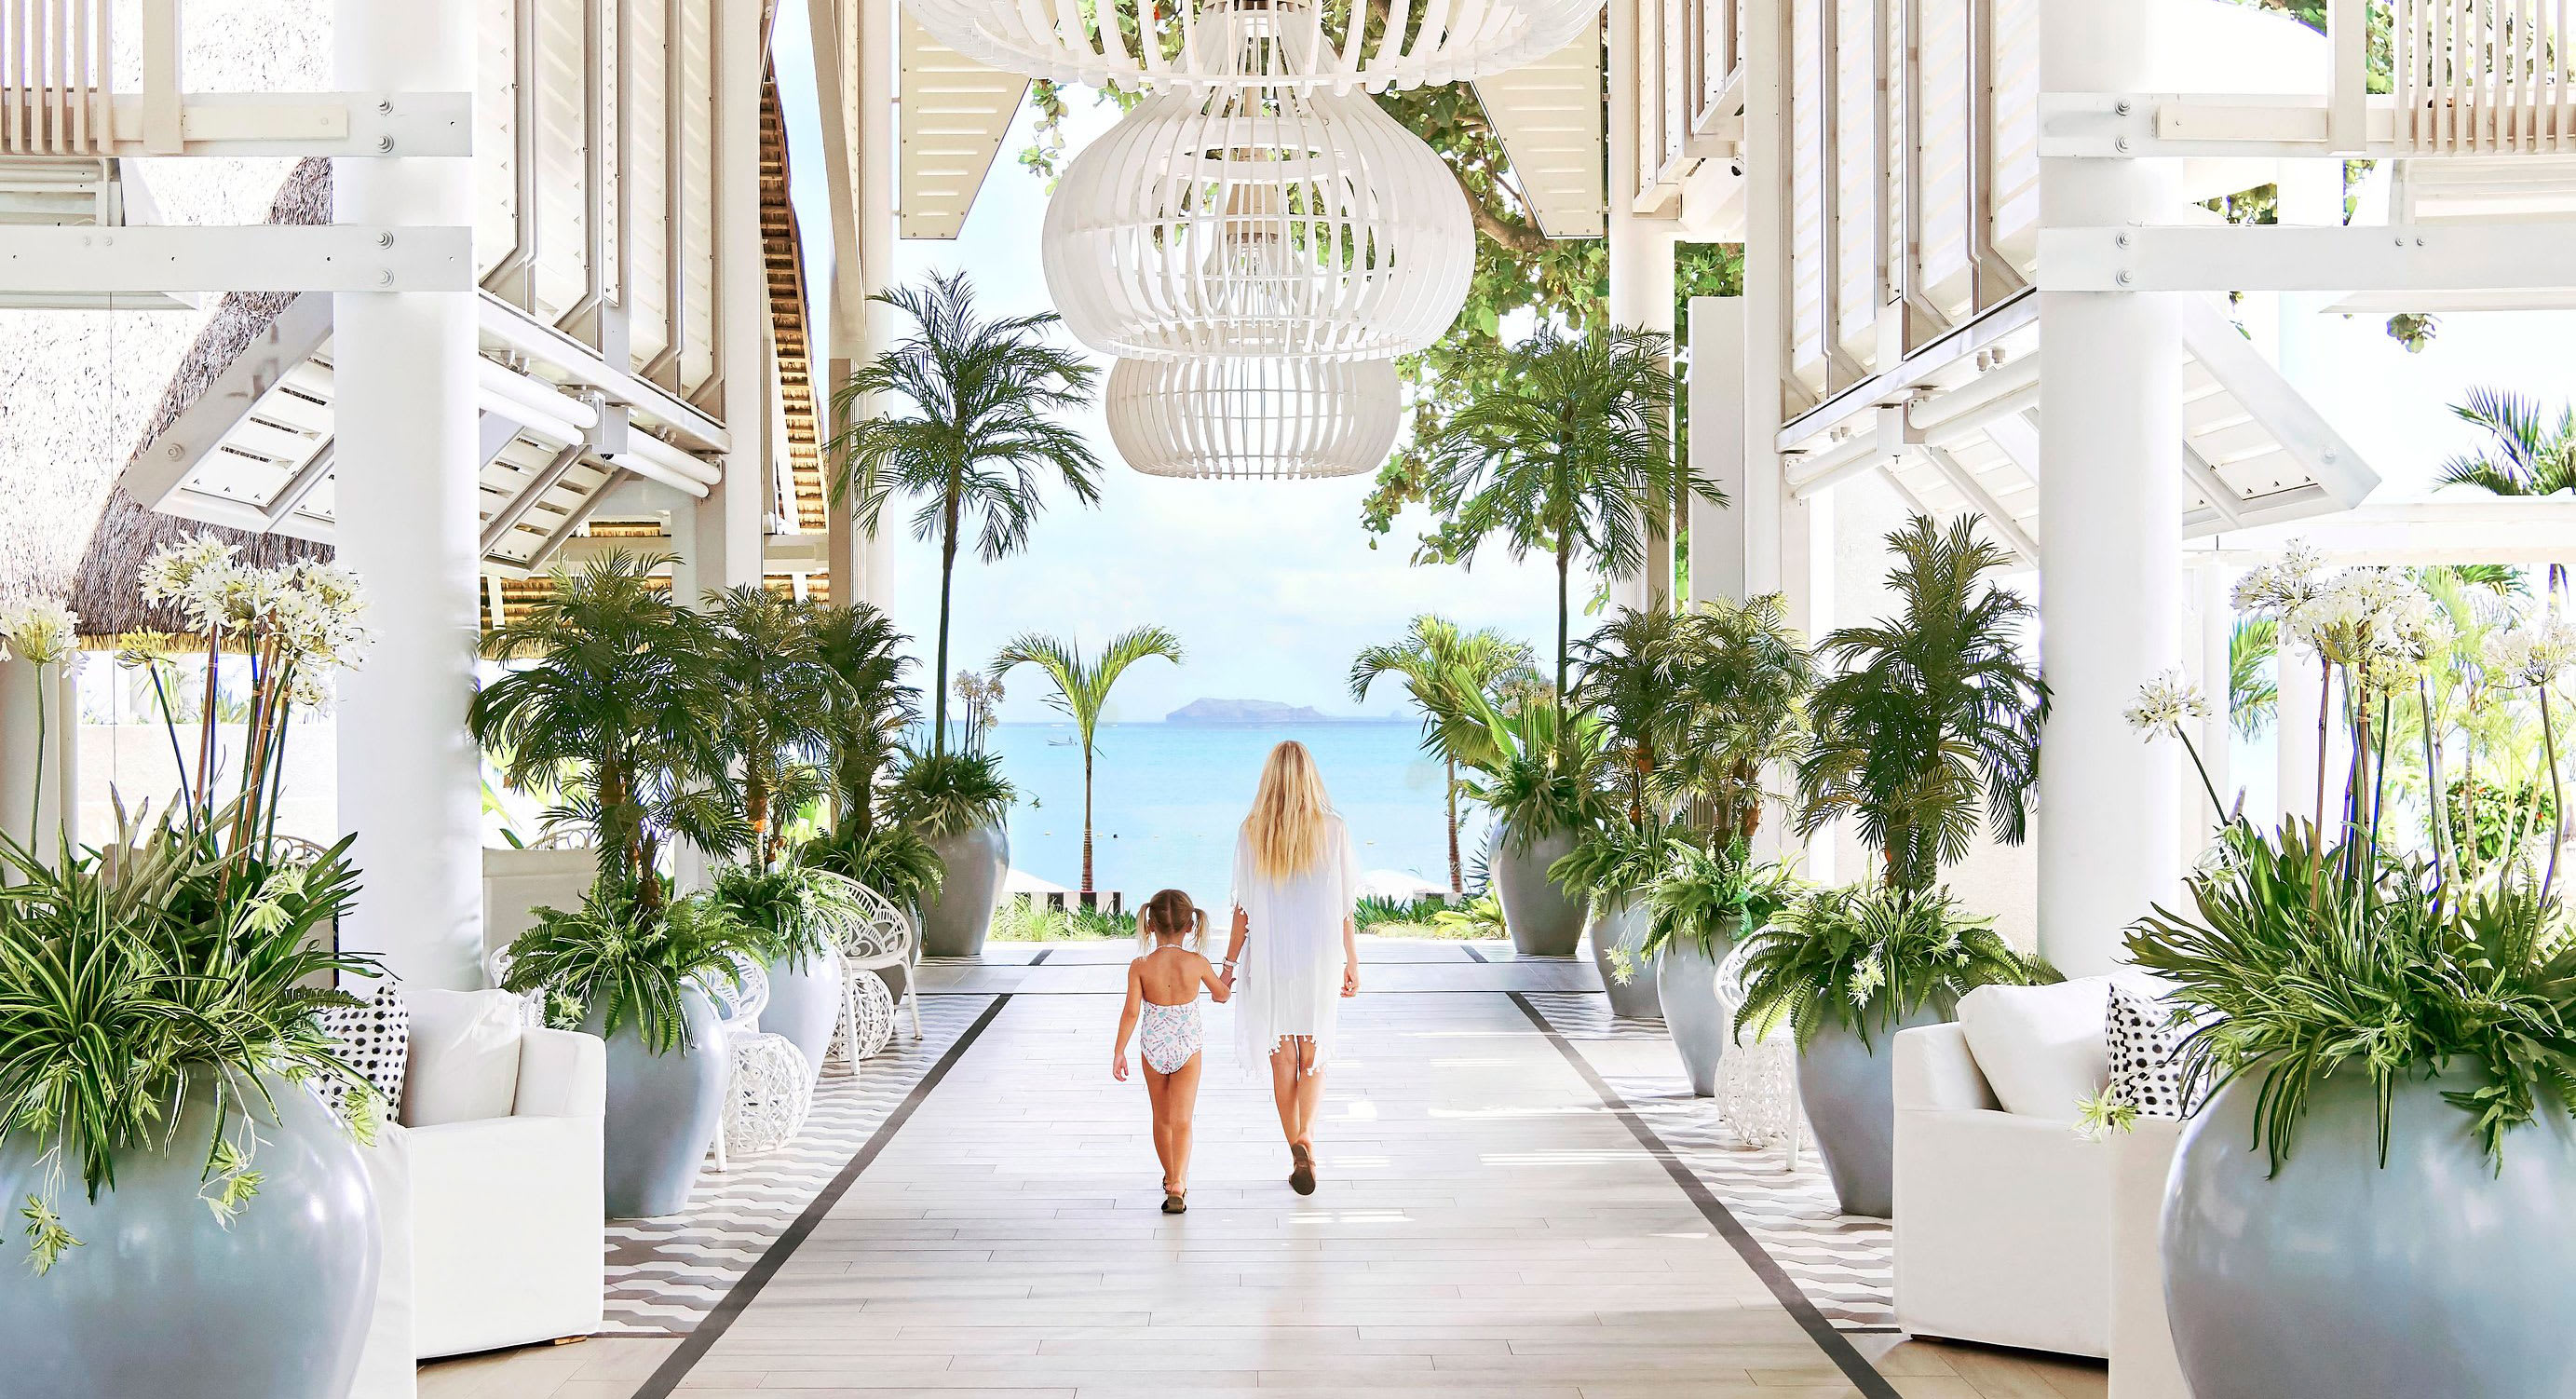 A white lobby with green plants with a view out to the blue ocean